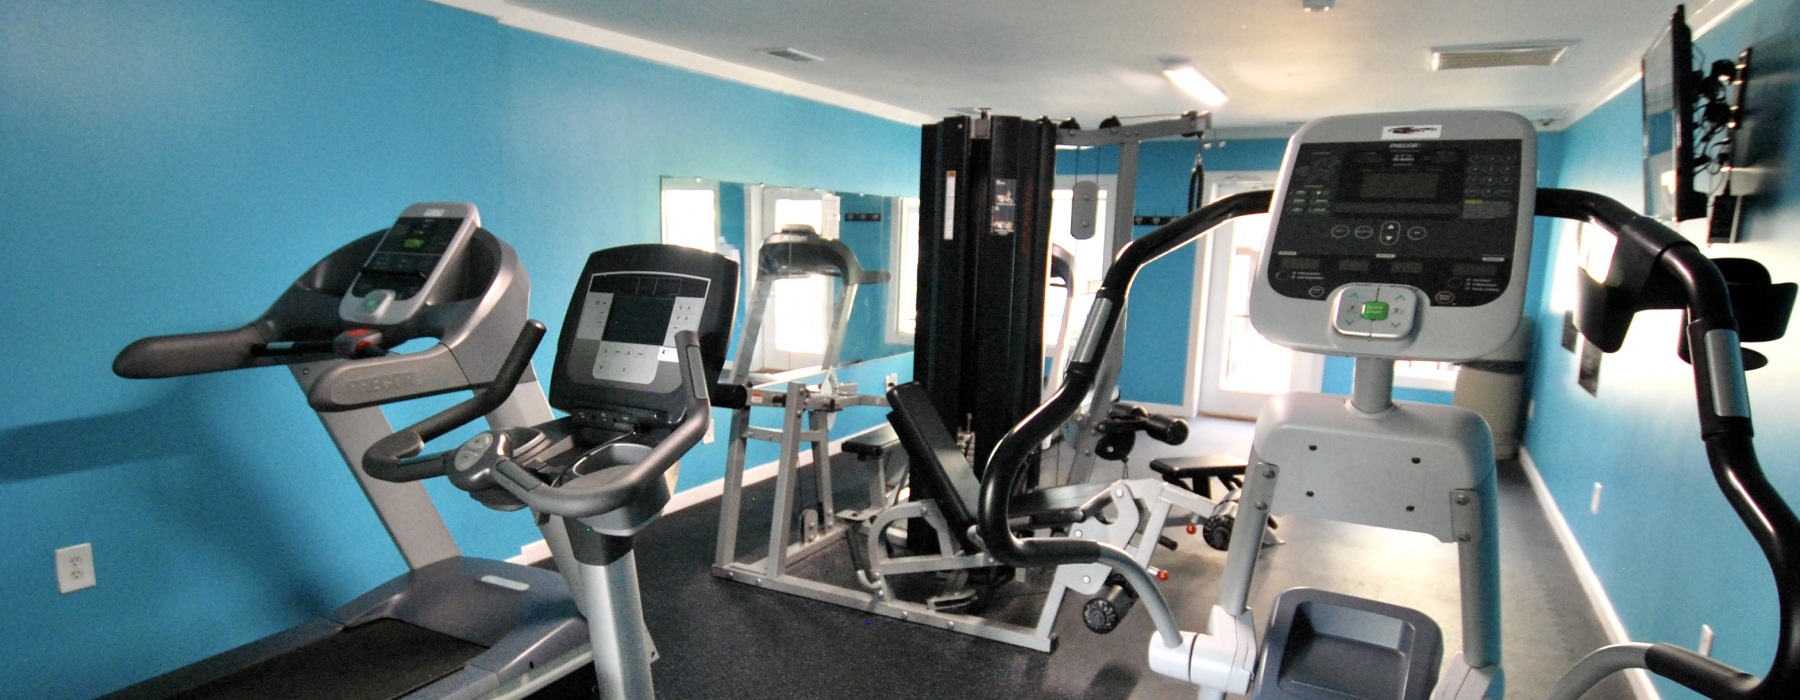 Cardio and weight equipment in the fitness center at Hunter's Ridge